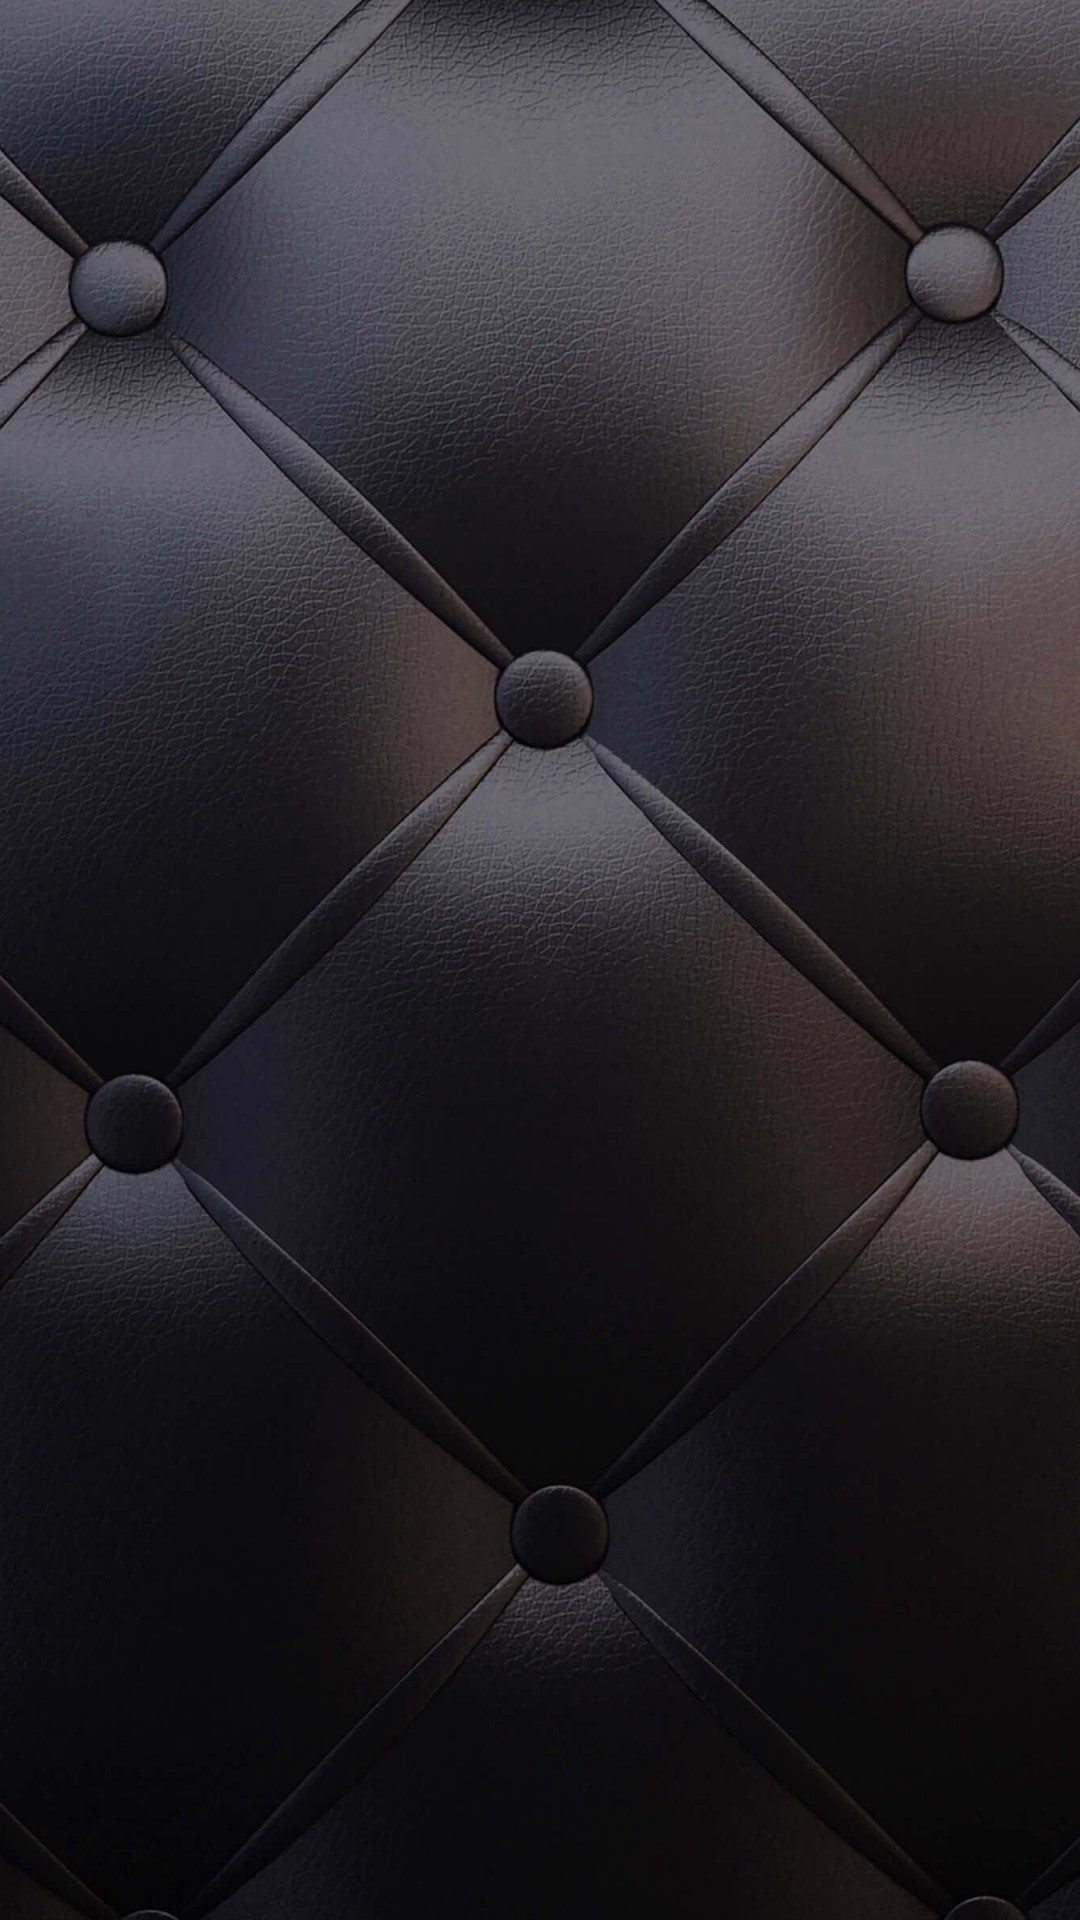 Download black leather vintage sofa hd wallpaper for galaxy note 3 hdwallpapers net